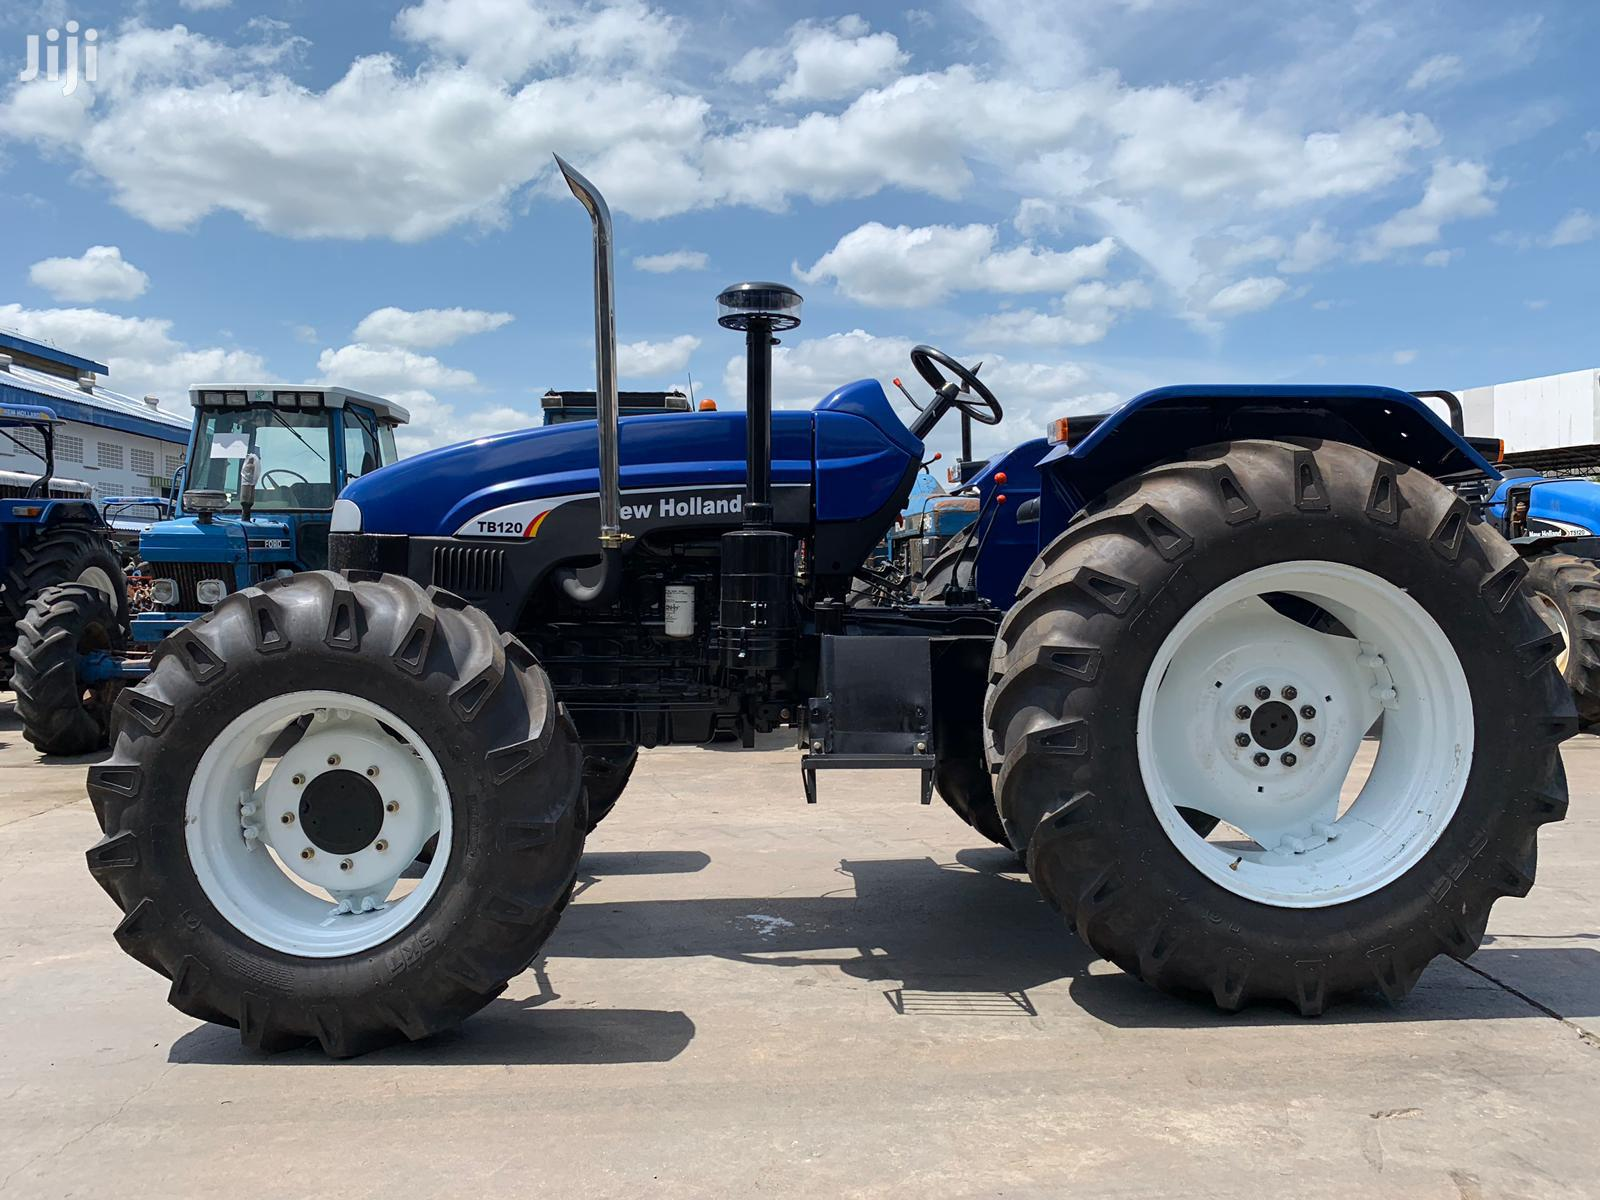 New Holland Tractors TB110 And TB 120 2WD And 4WD